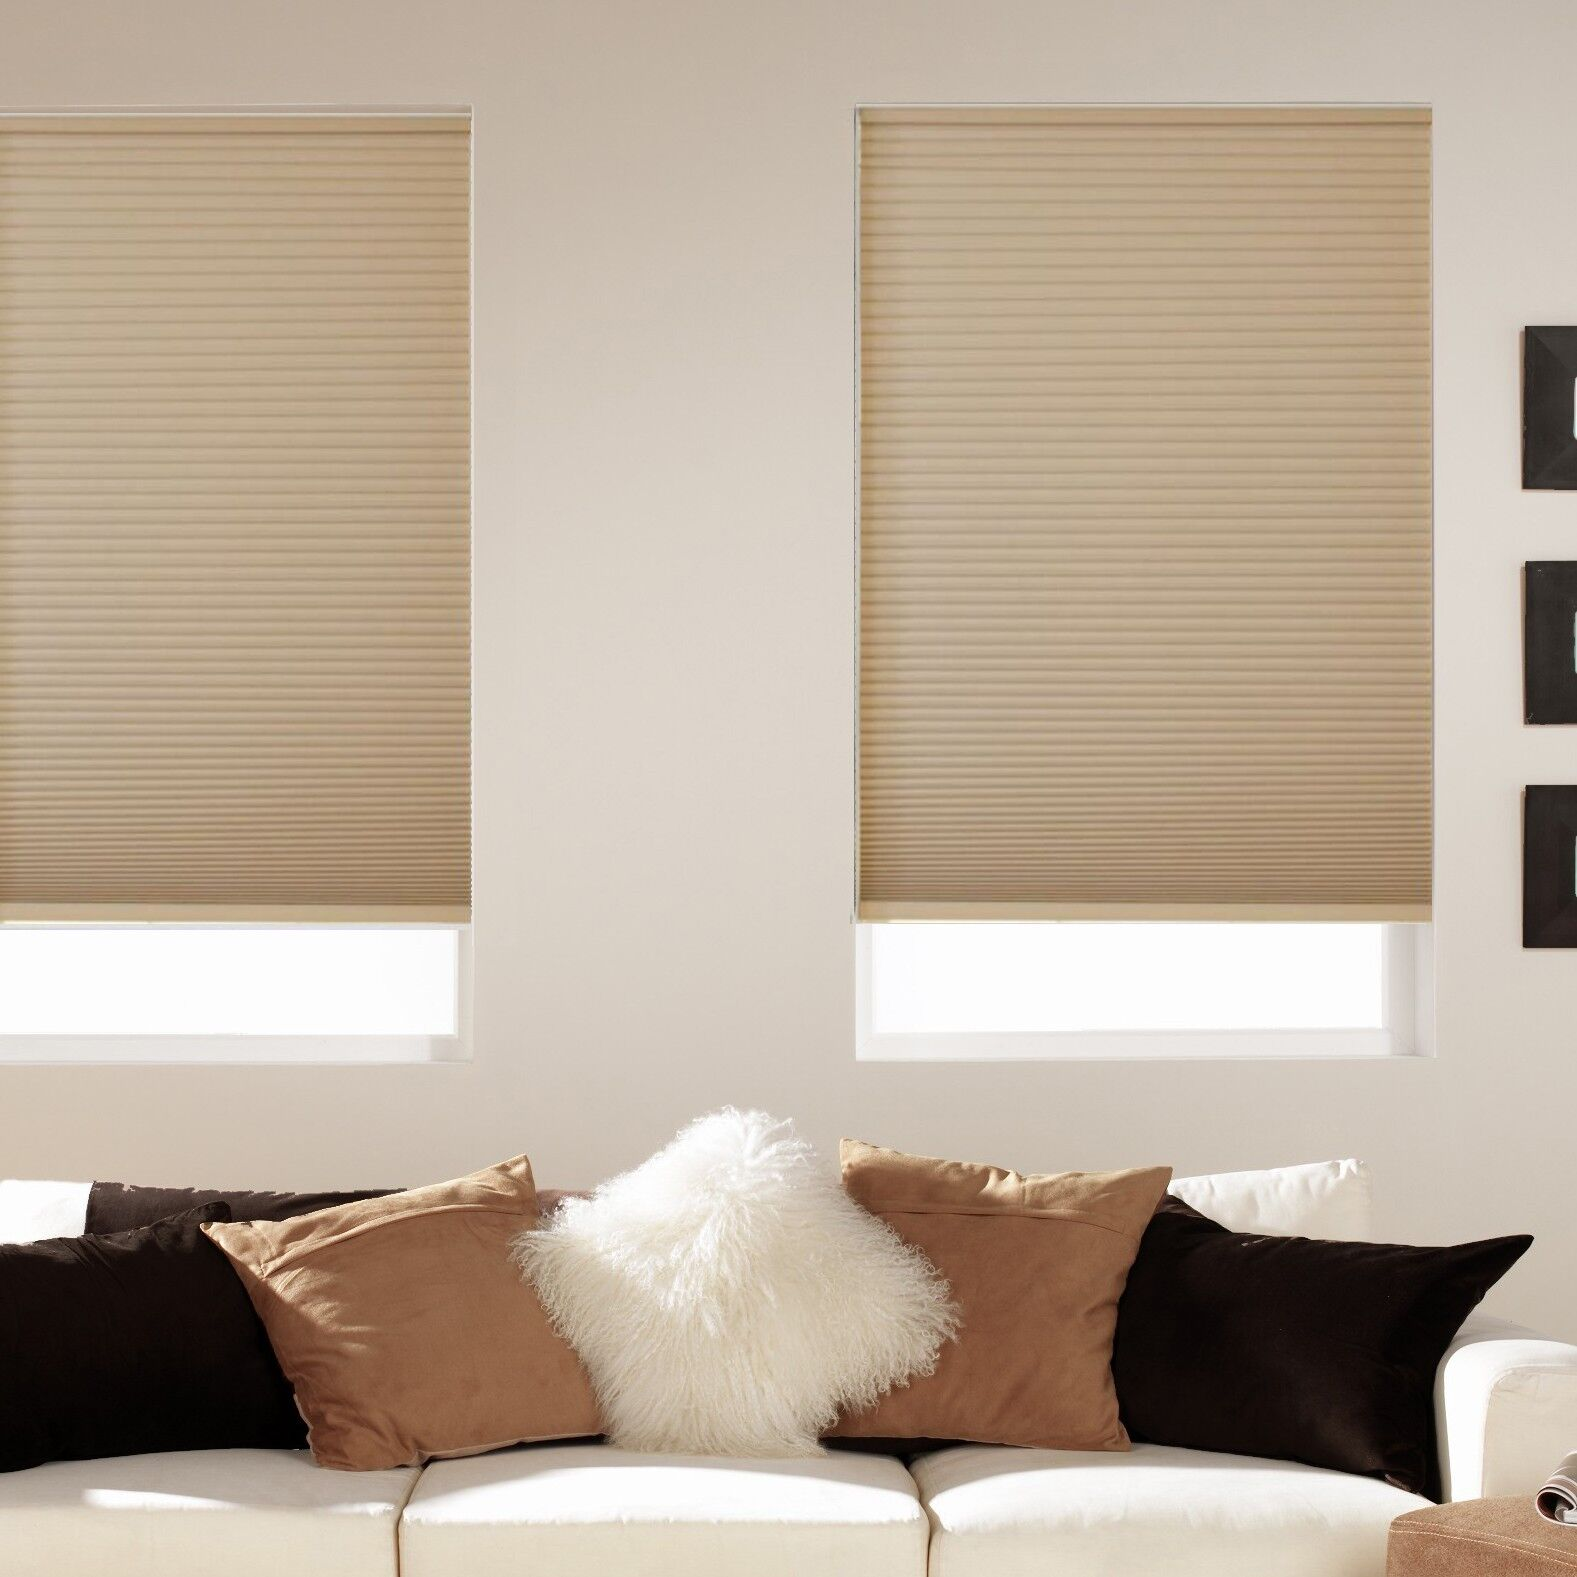 newco protect room img sun treatments window darkening in the from with shades vancouver